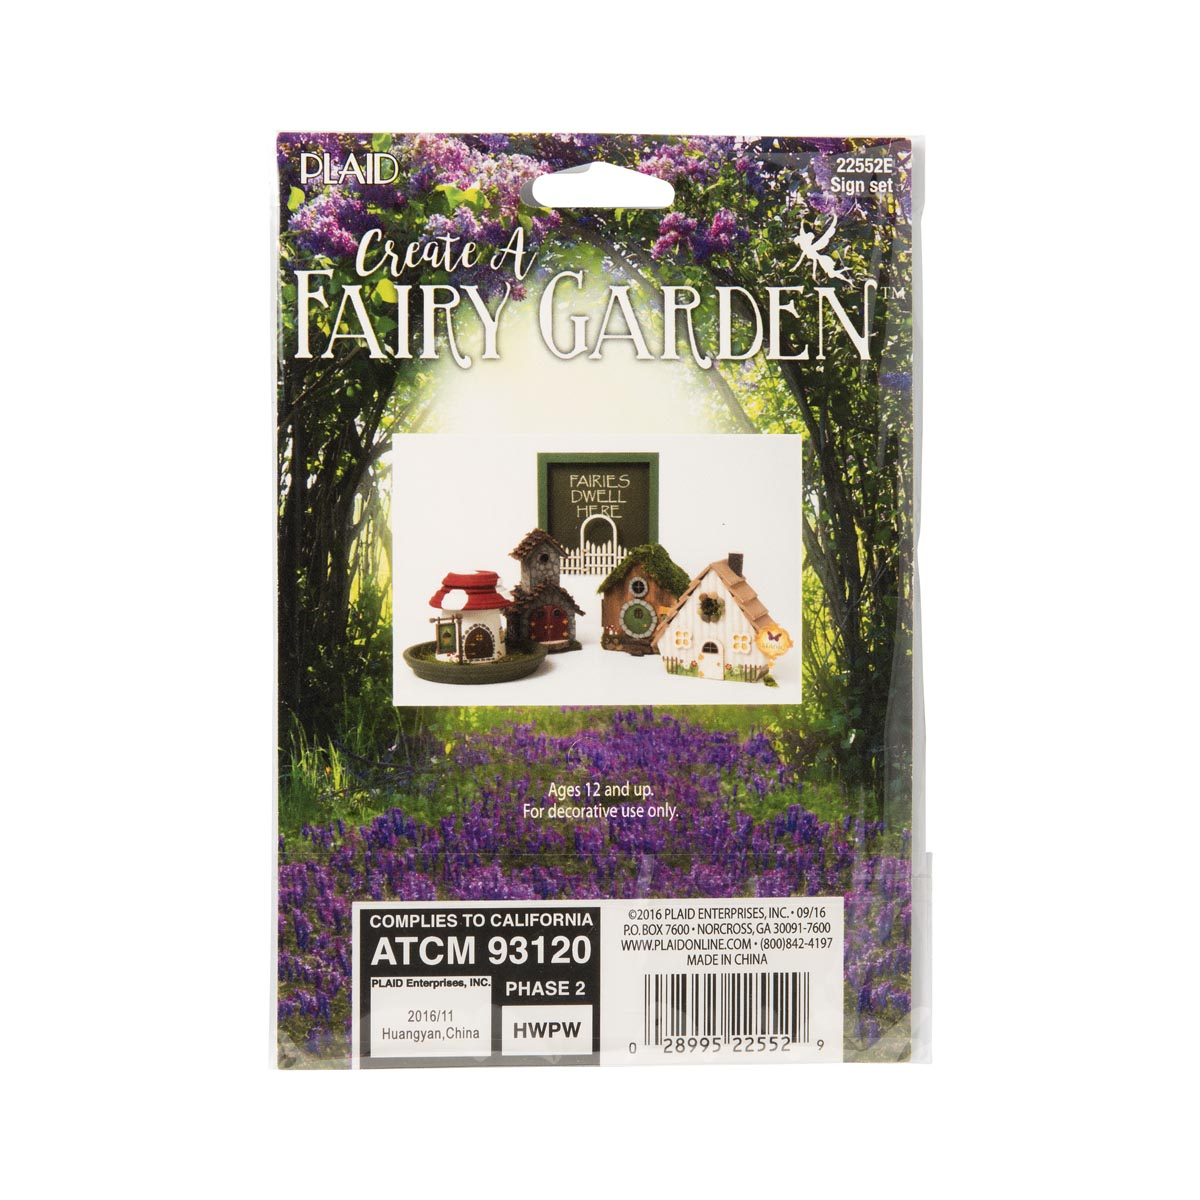 Plaid ® Wood Surfaces - Fairy Garden - Sign 2 pc.